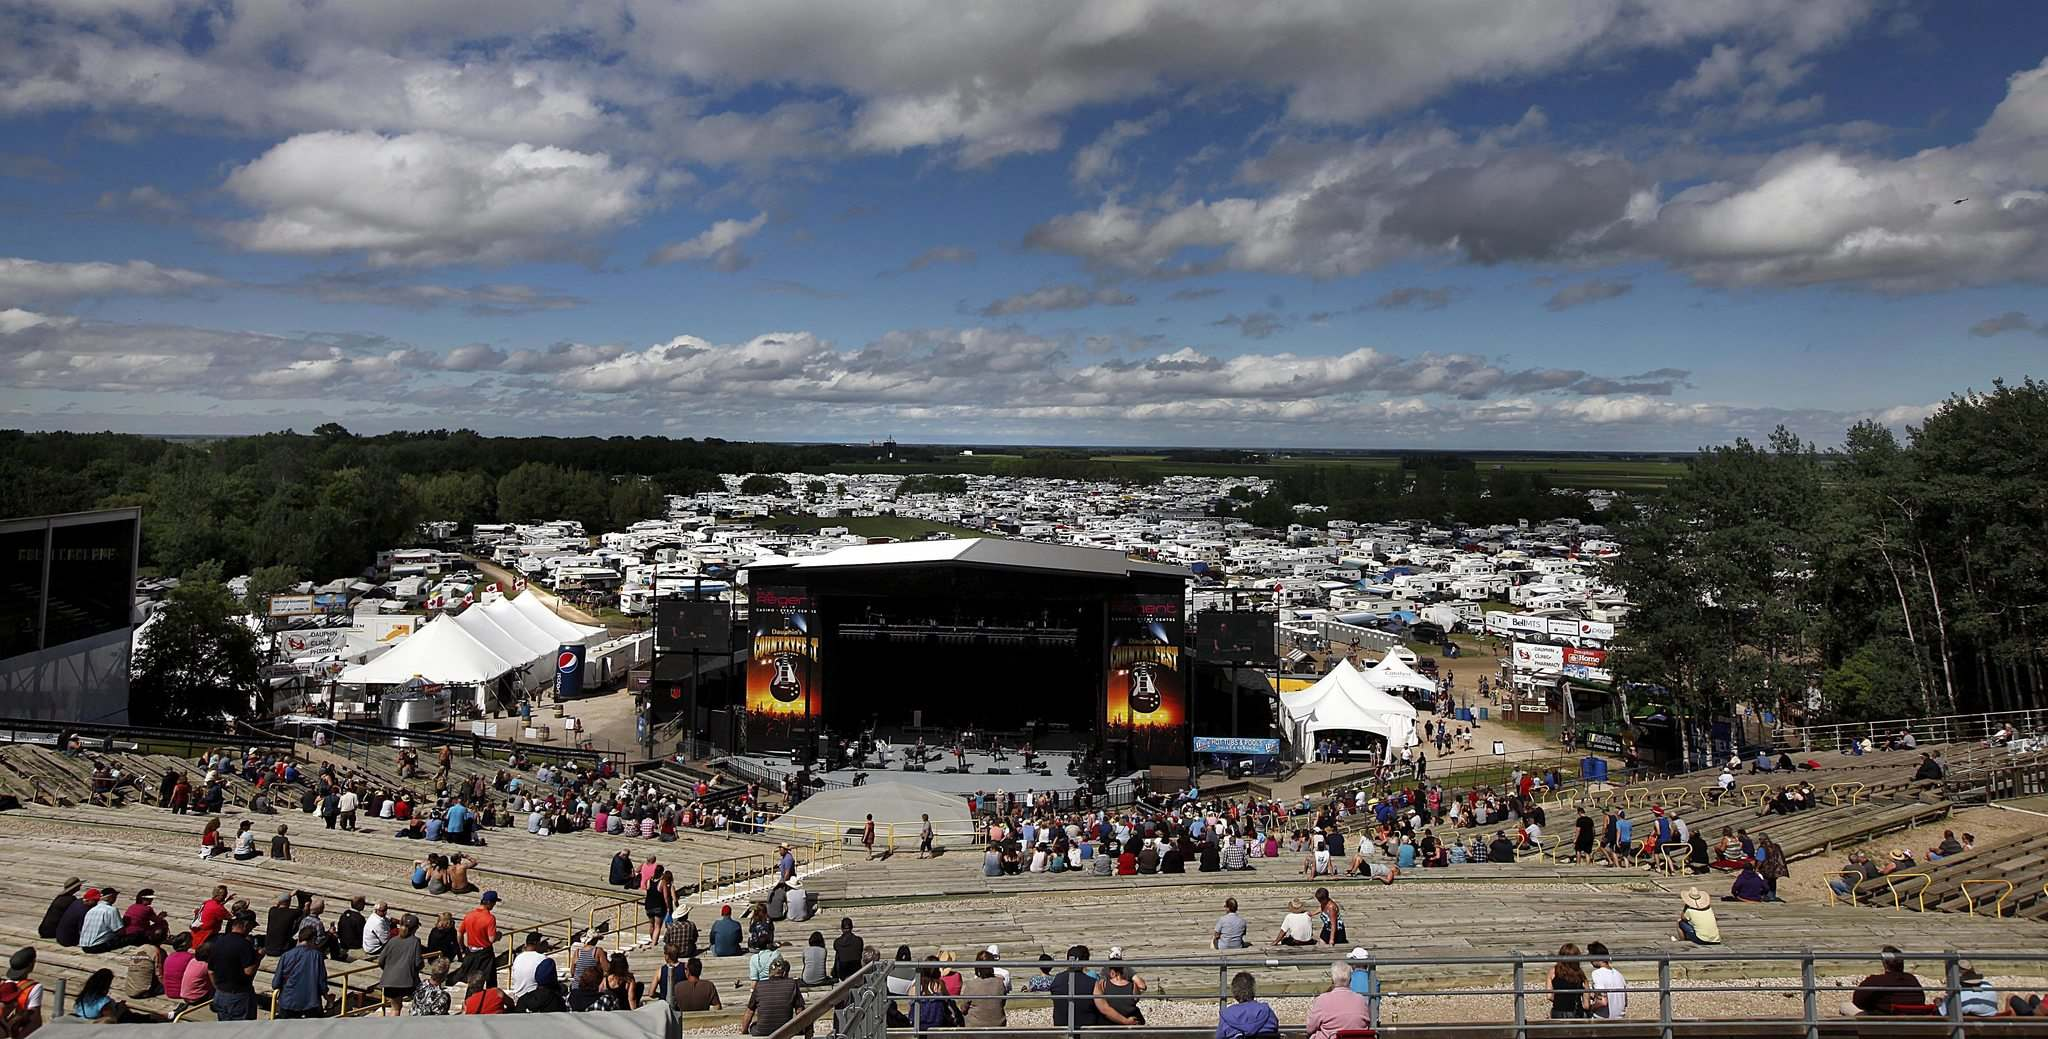 PHIL HOSSACK / WINNIPEG FREE PRESS files</p><p>The Selo Ukrainia site in Dauphin offers a panoramic view from the top of the grandstand at the mainstage.</p></p>